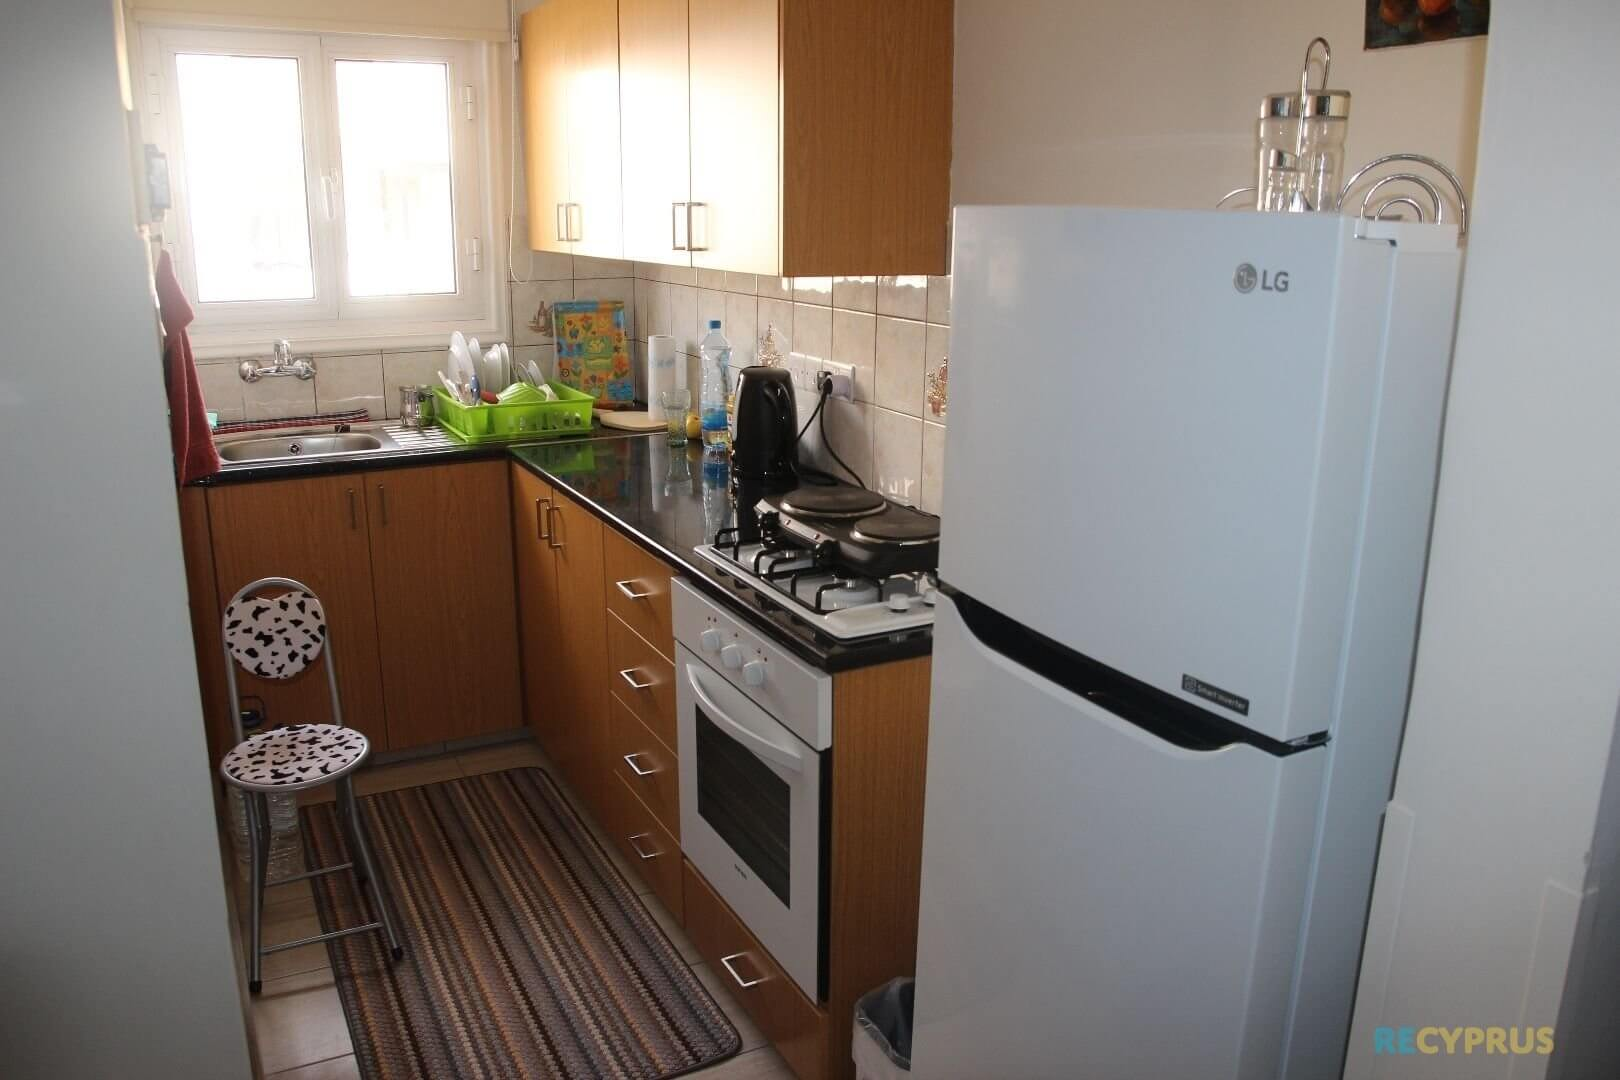 Apartment for sale Ayia Napa Famagusta Cyprus 4 3506